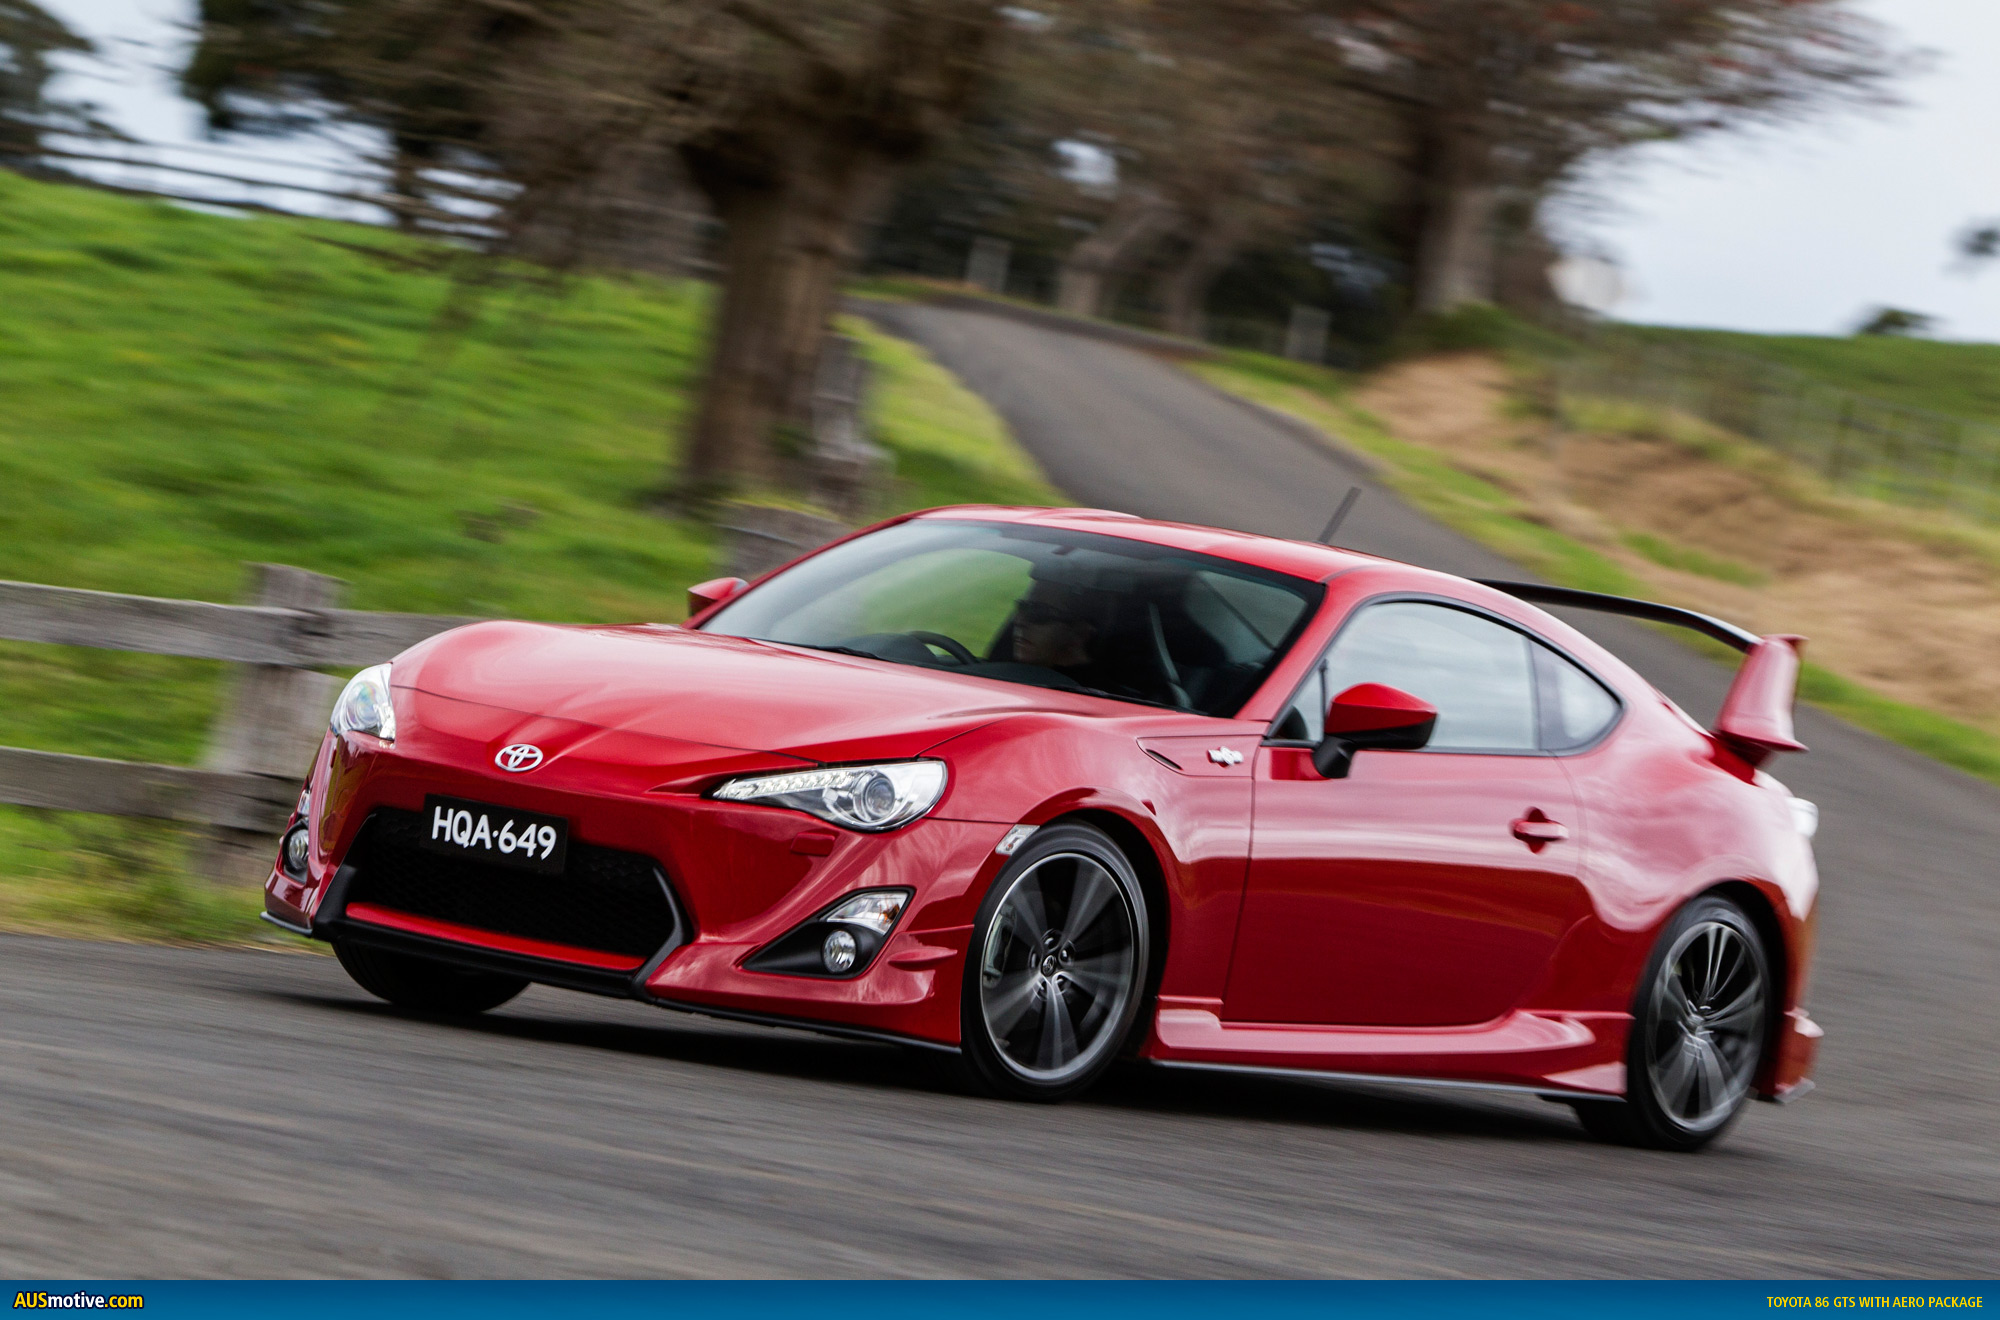 Spec Miata For Sale >> AUSmotive.com » Toyota 86 GTS gives you wings